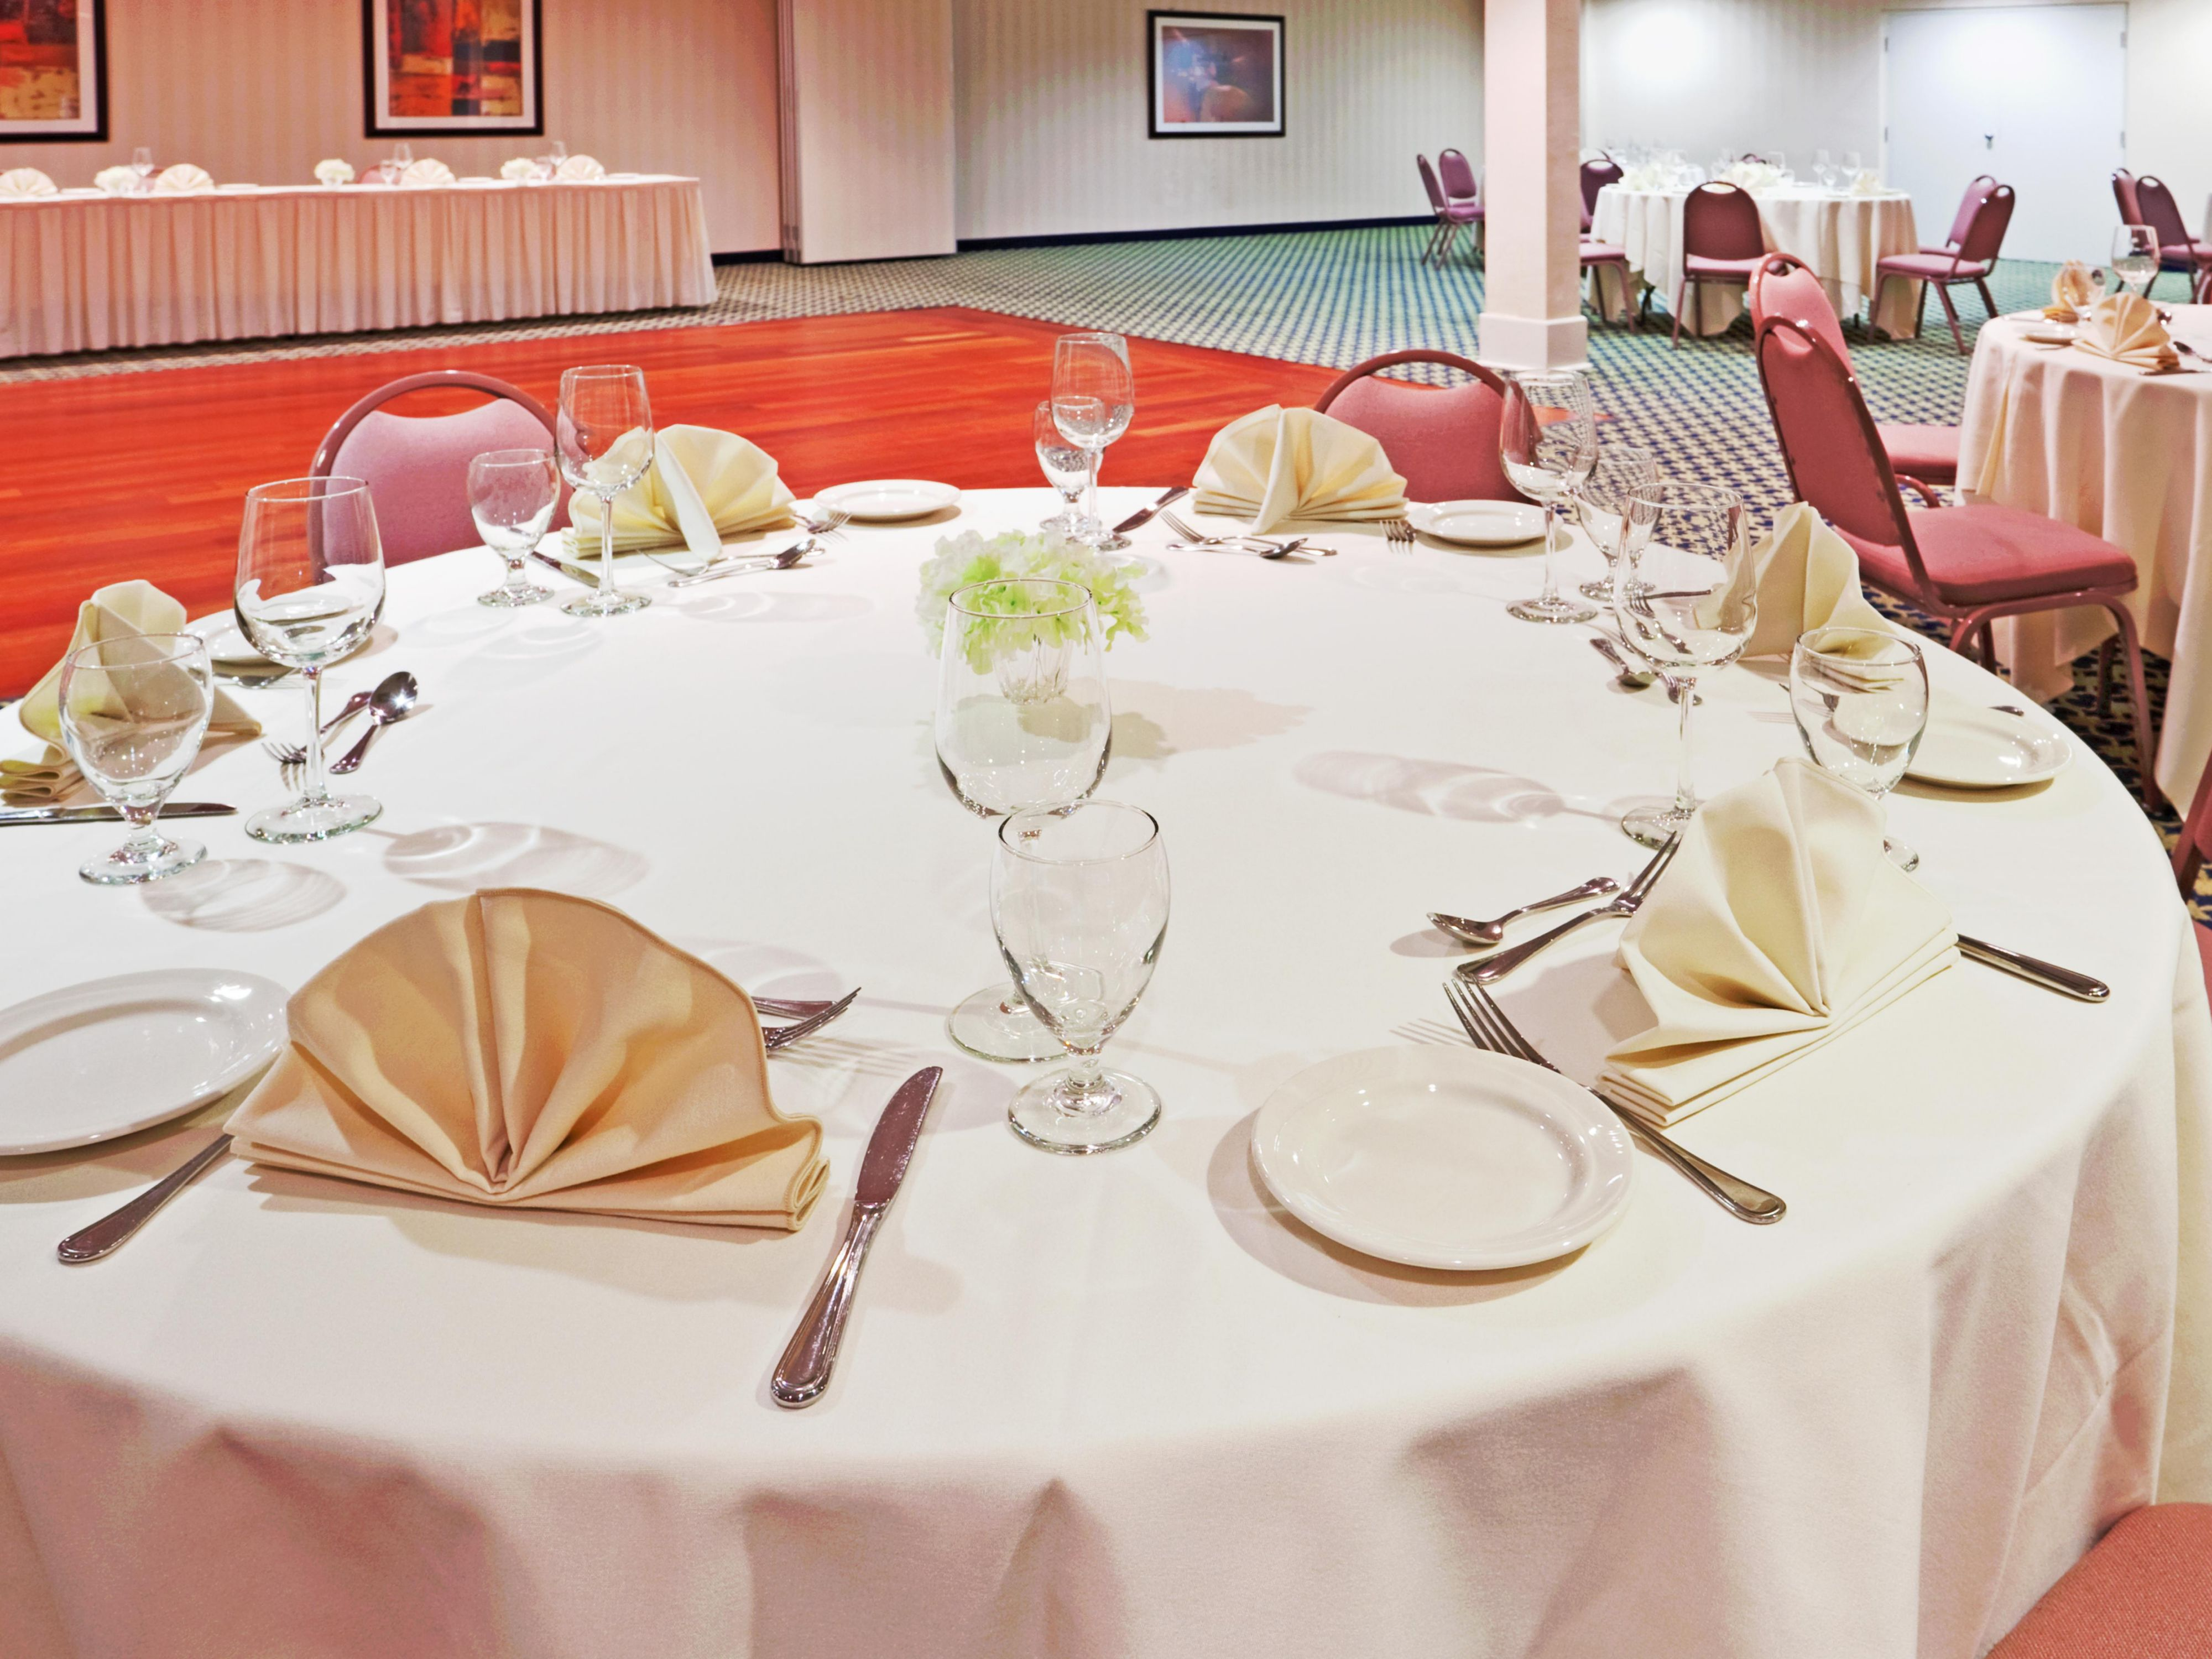 Hyannisport Ballroom for your meetings or functions